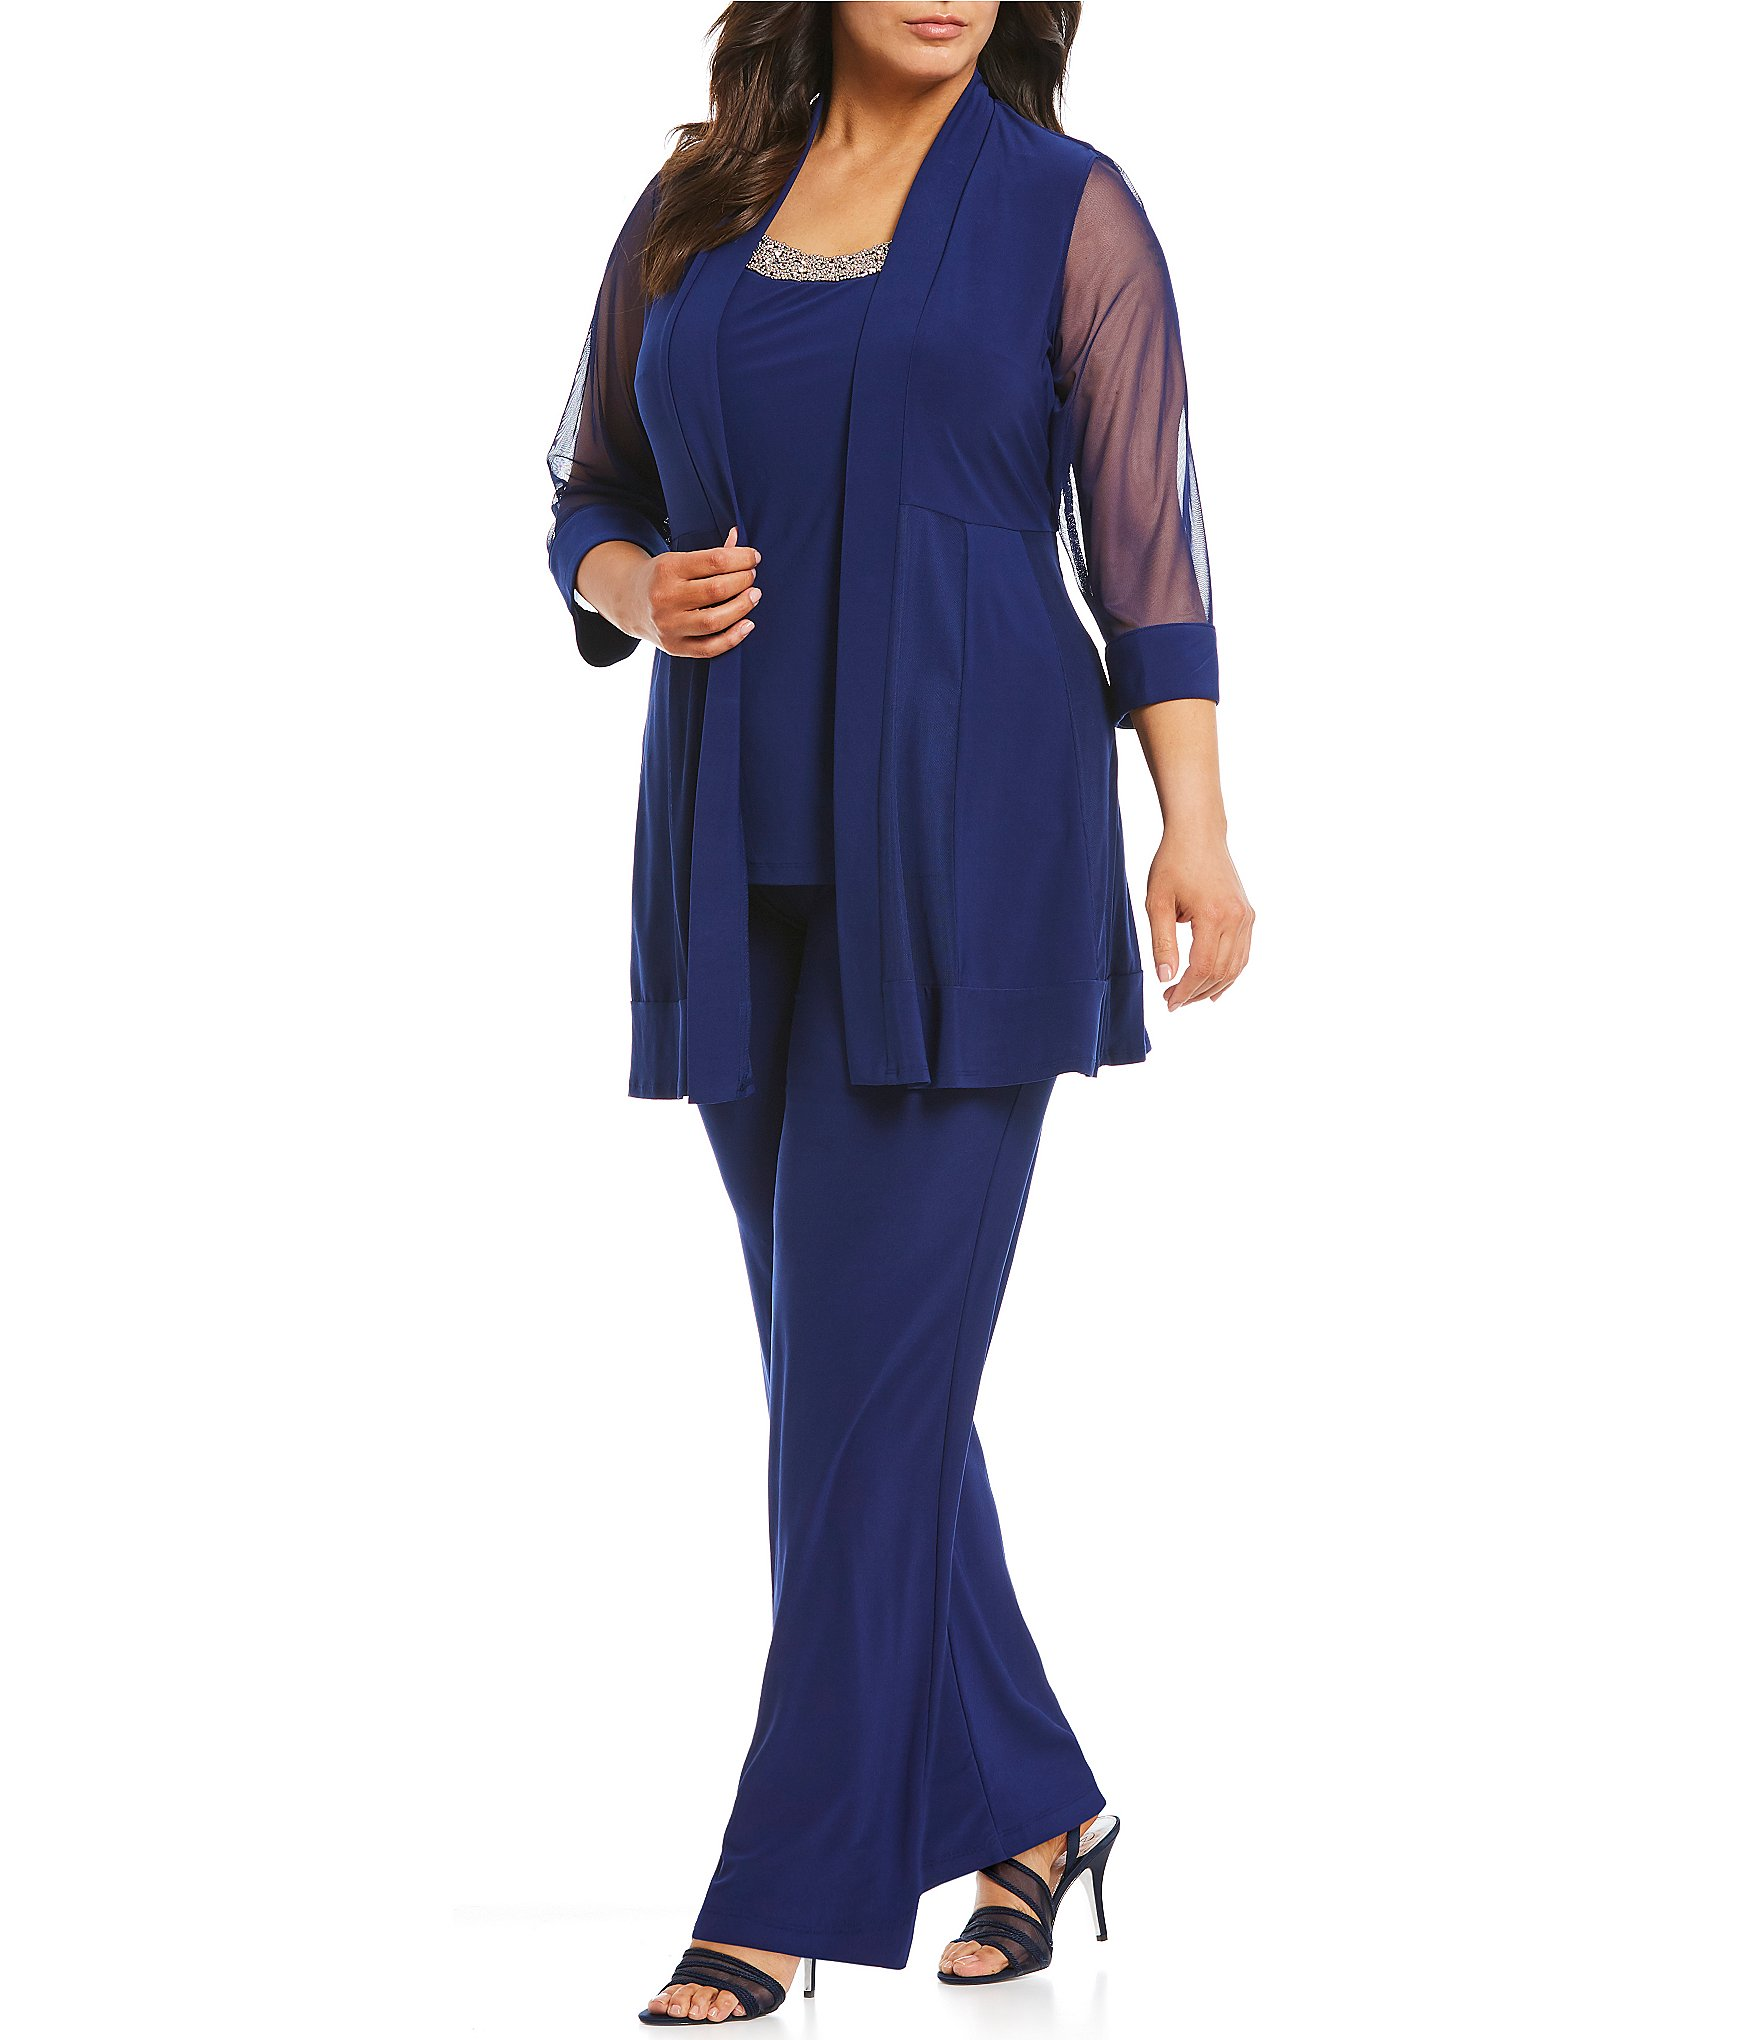 f4baa9f203cc6 R and M Richards Women s Clothing